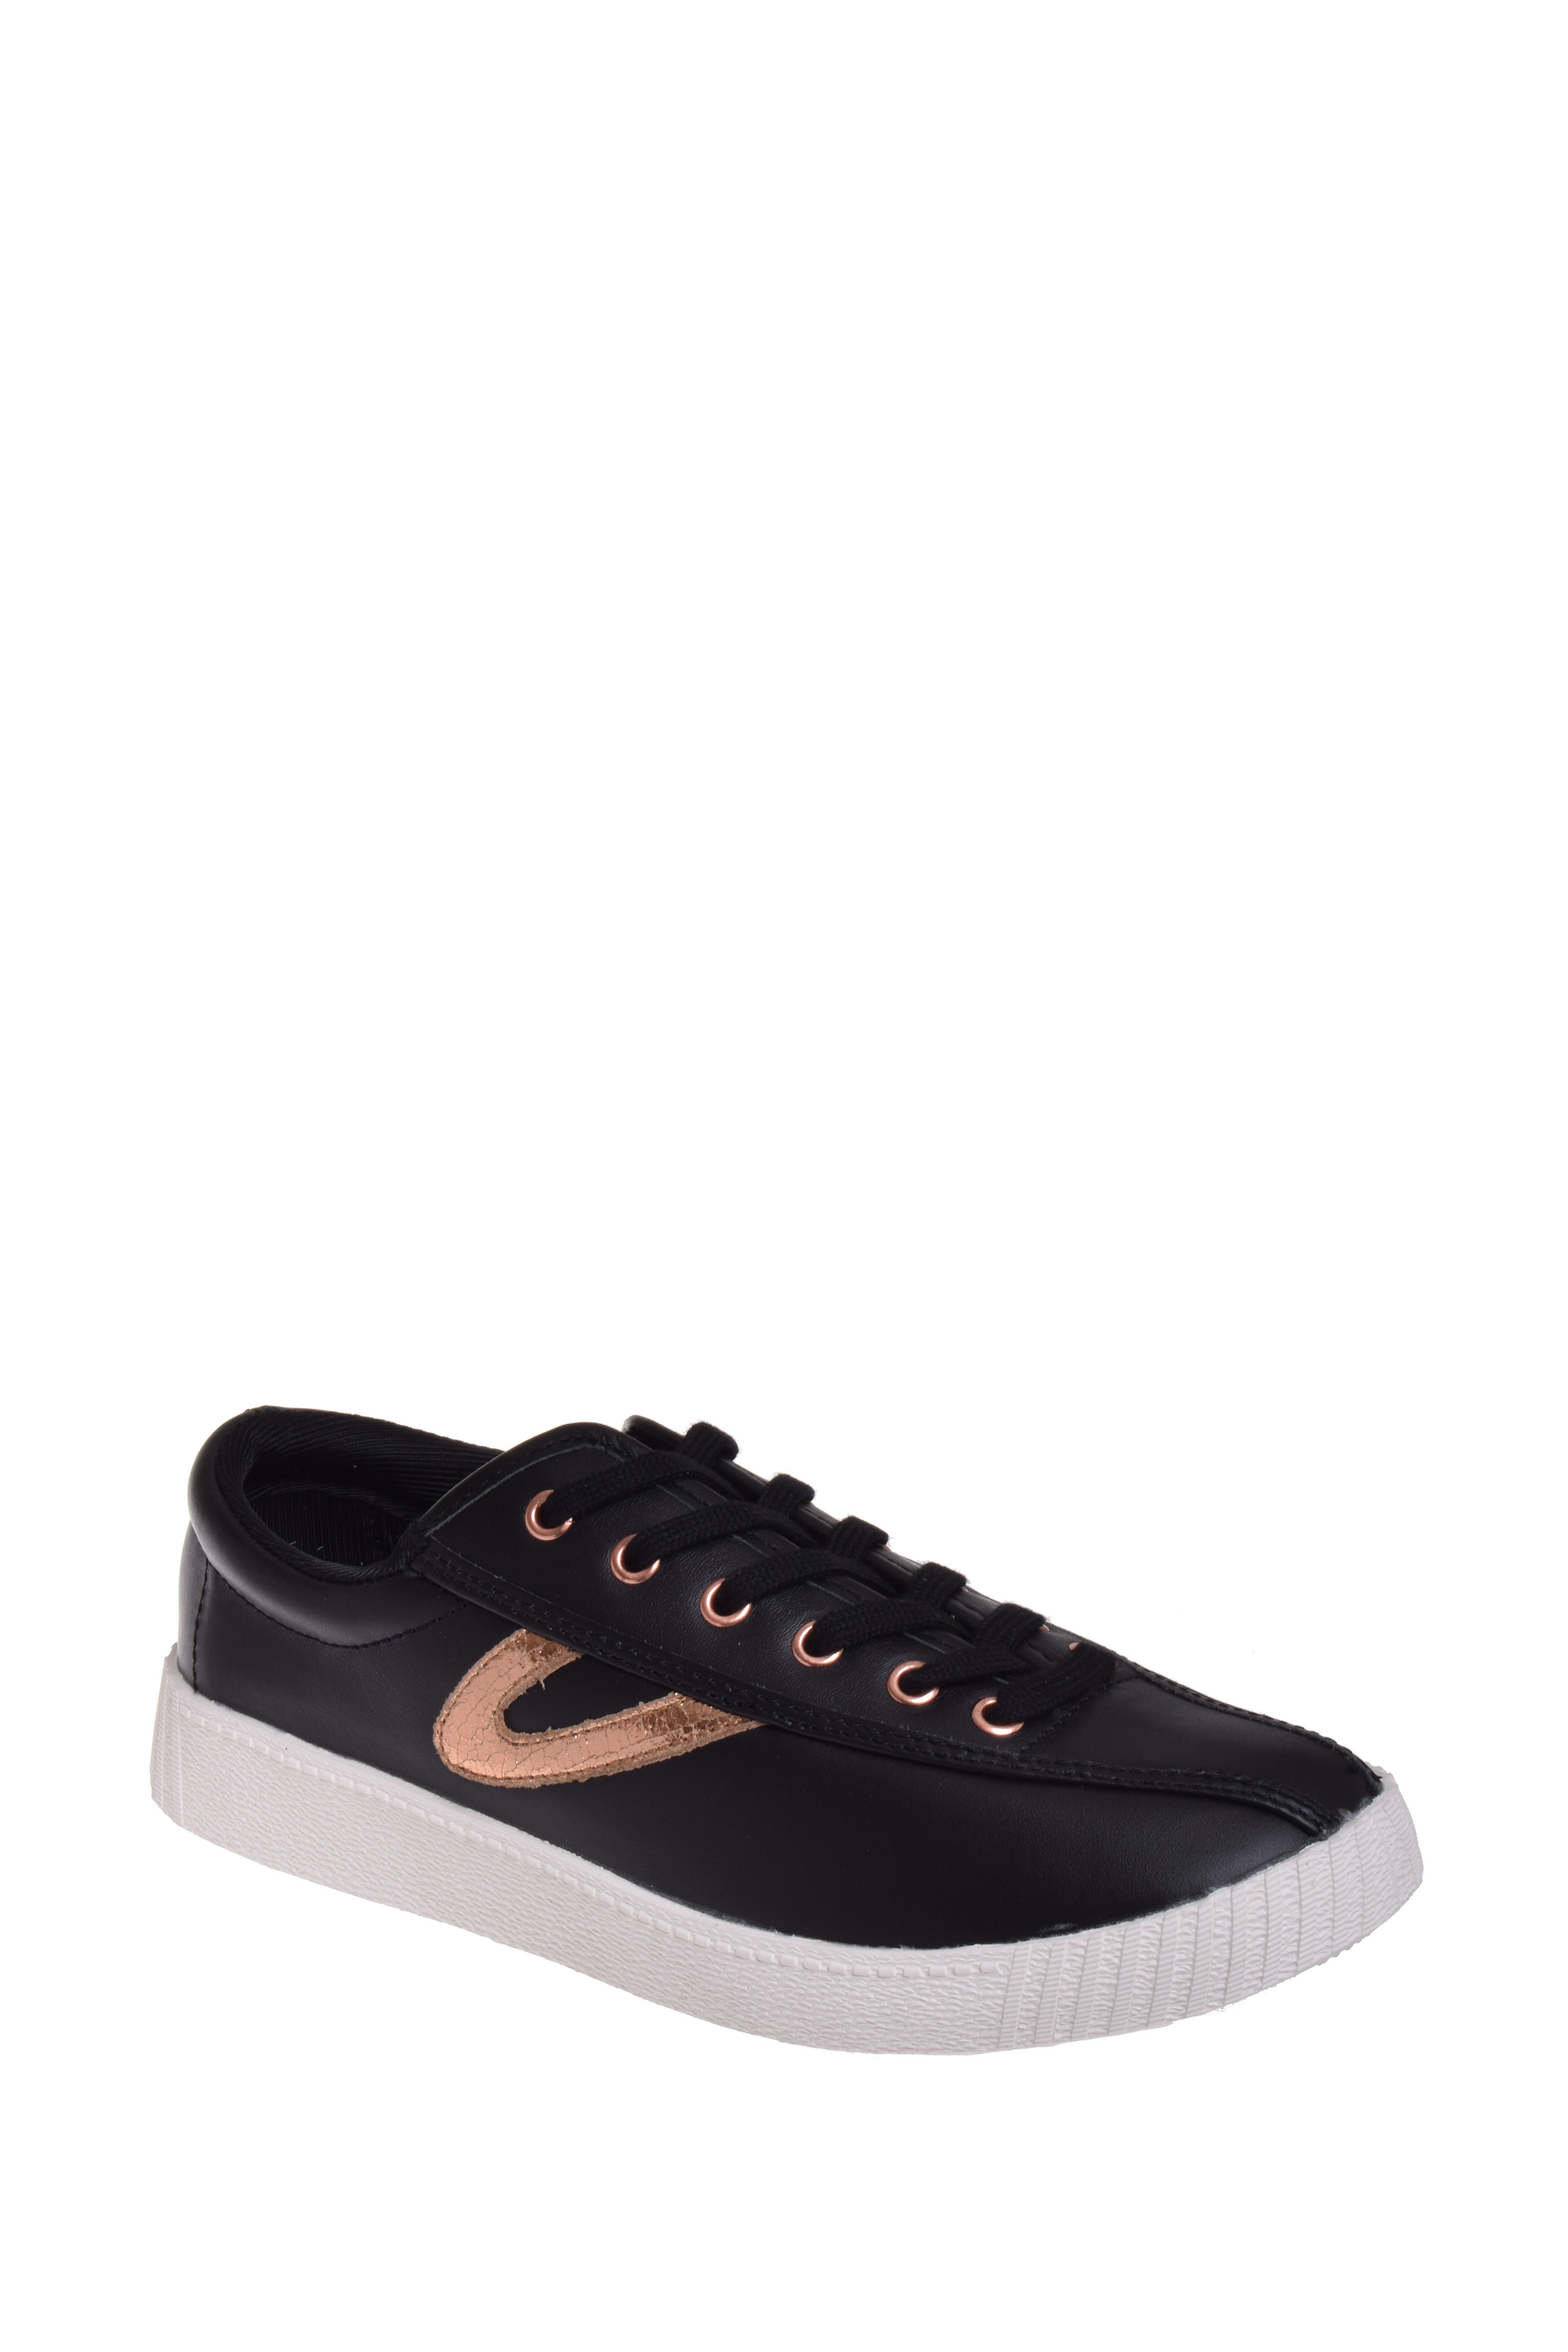 Tretorn Nylite 2 Plus Low Top Sneaker Black   Rose Gold by